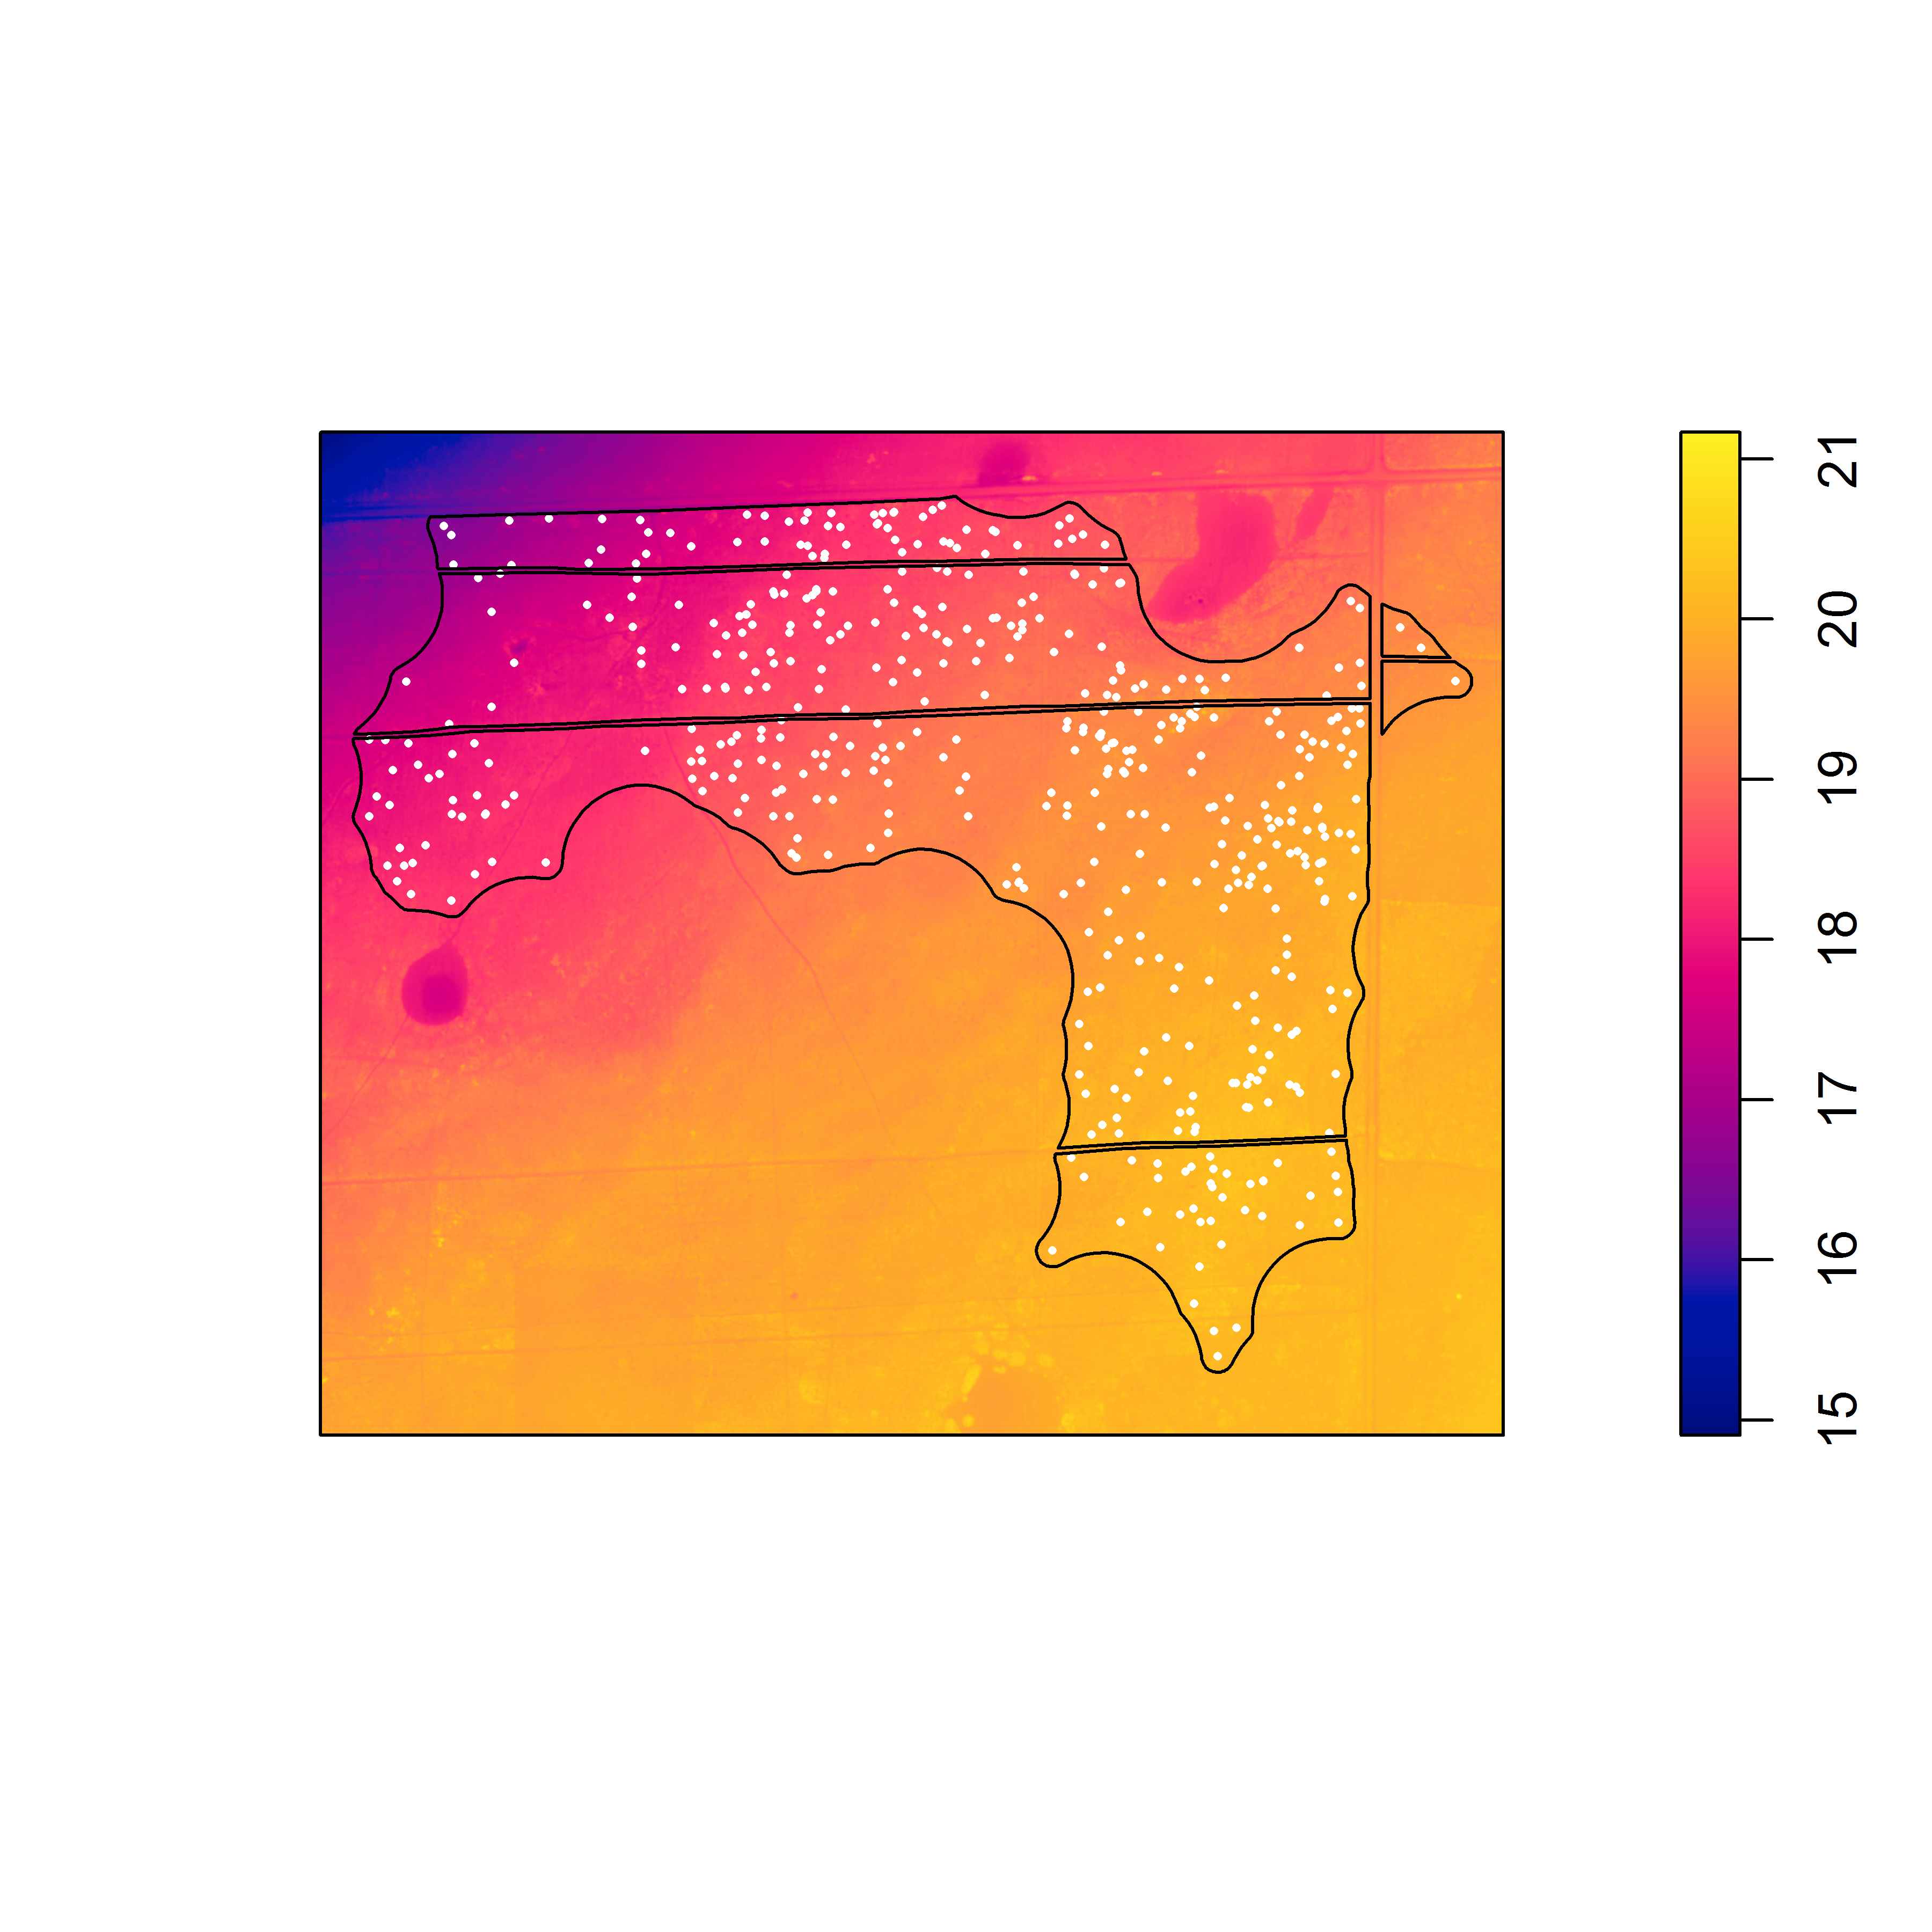 Point process modeling: how to detrend a raster (in R) and